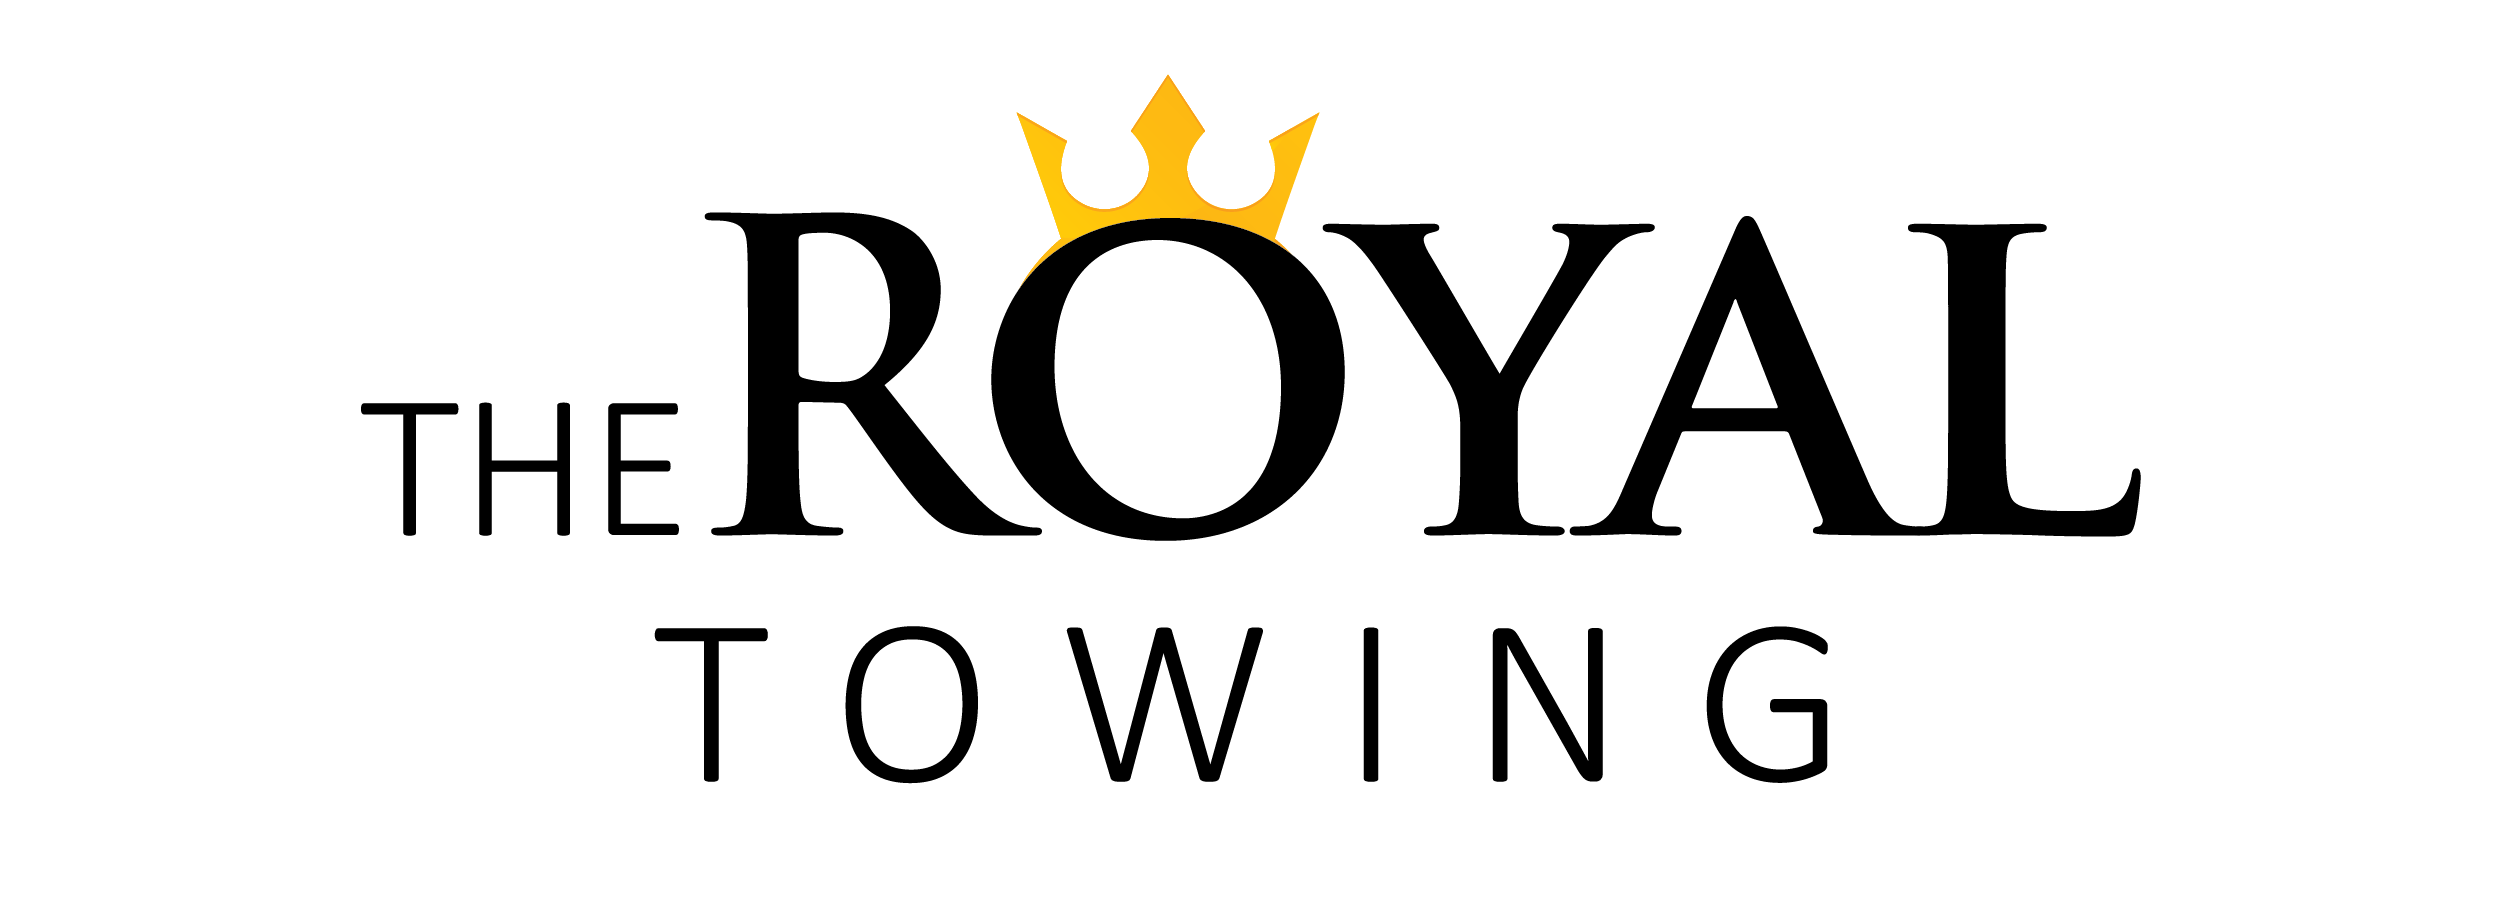 The Royal Towing logo